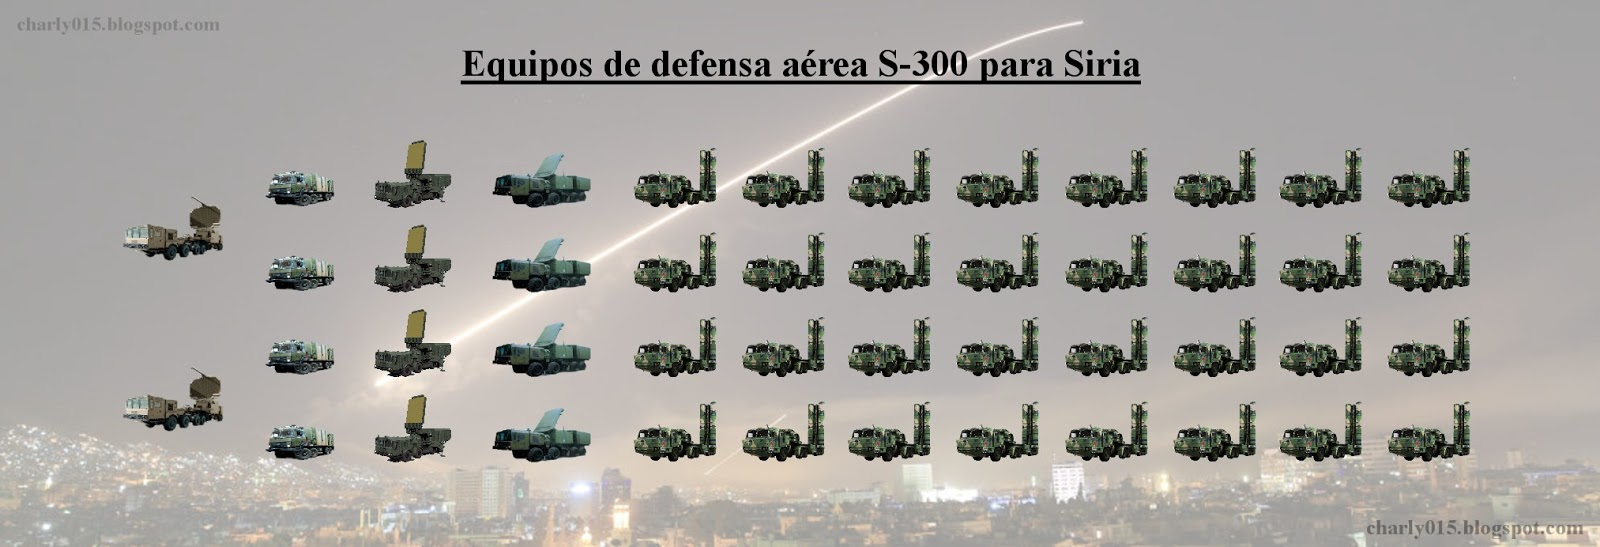 Syrian Air Defence Force - Page 3 Siria%2Bs-300%2Bentregas